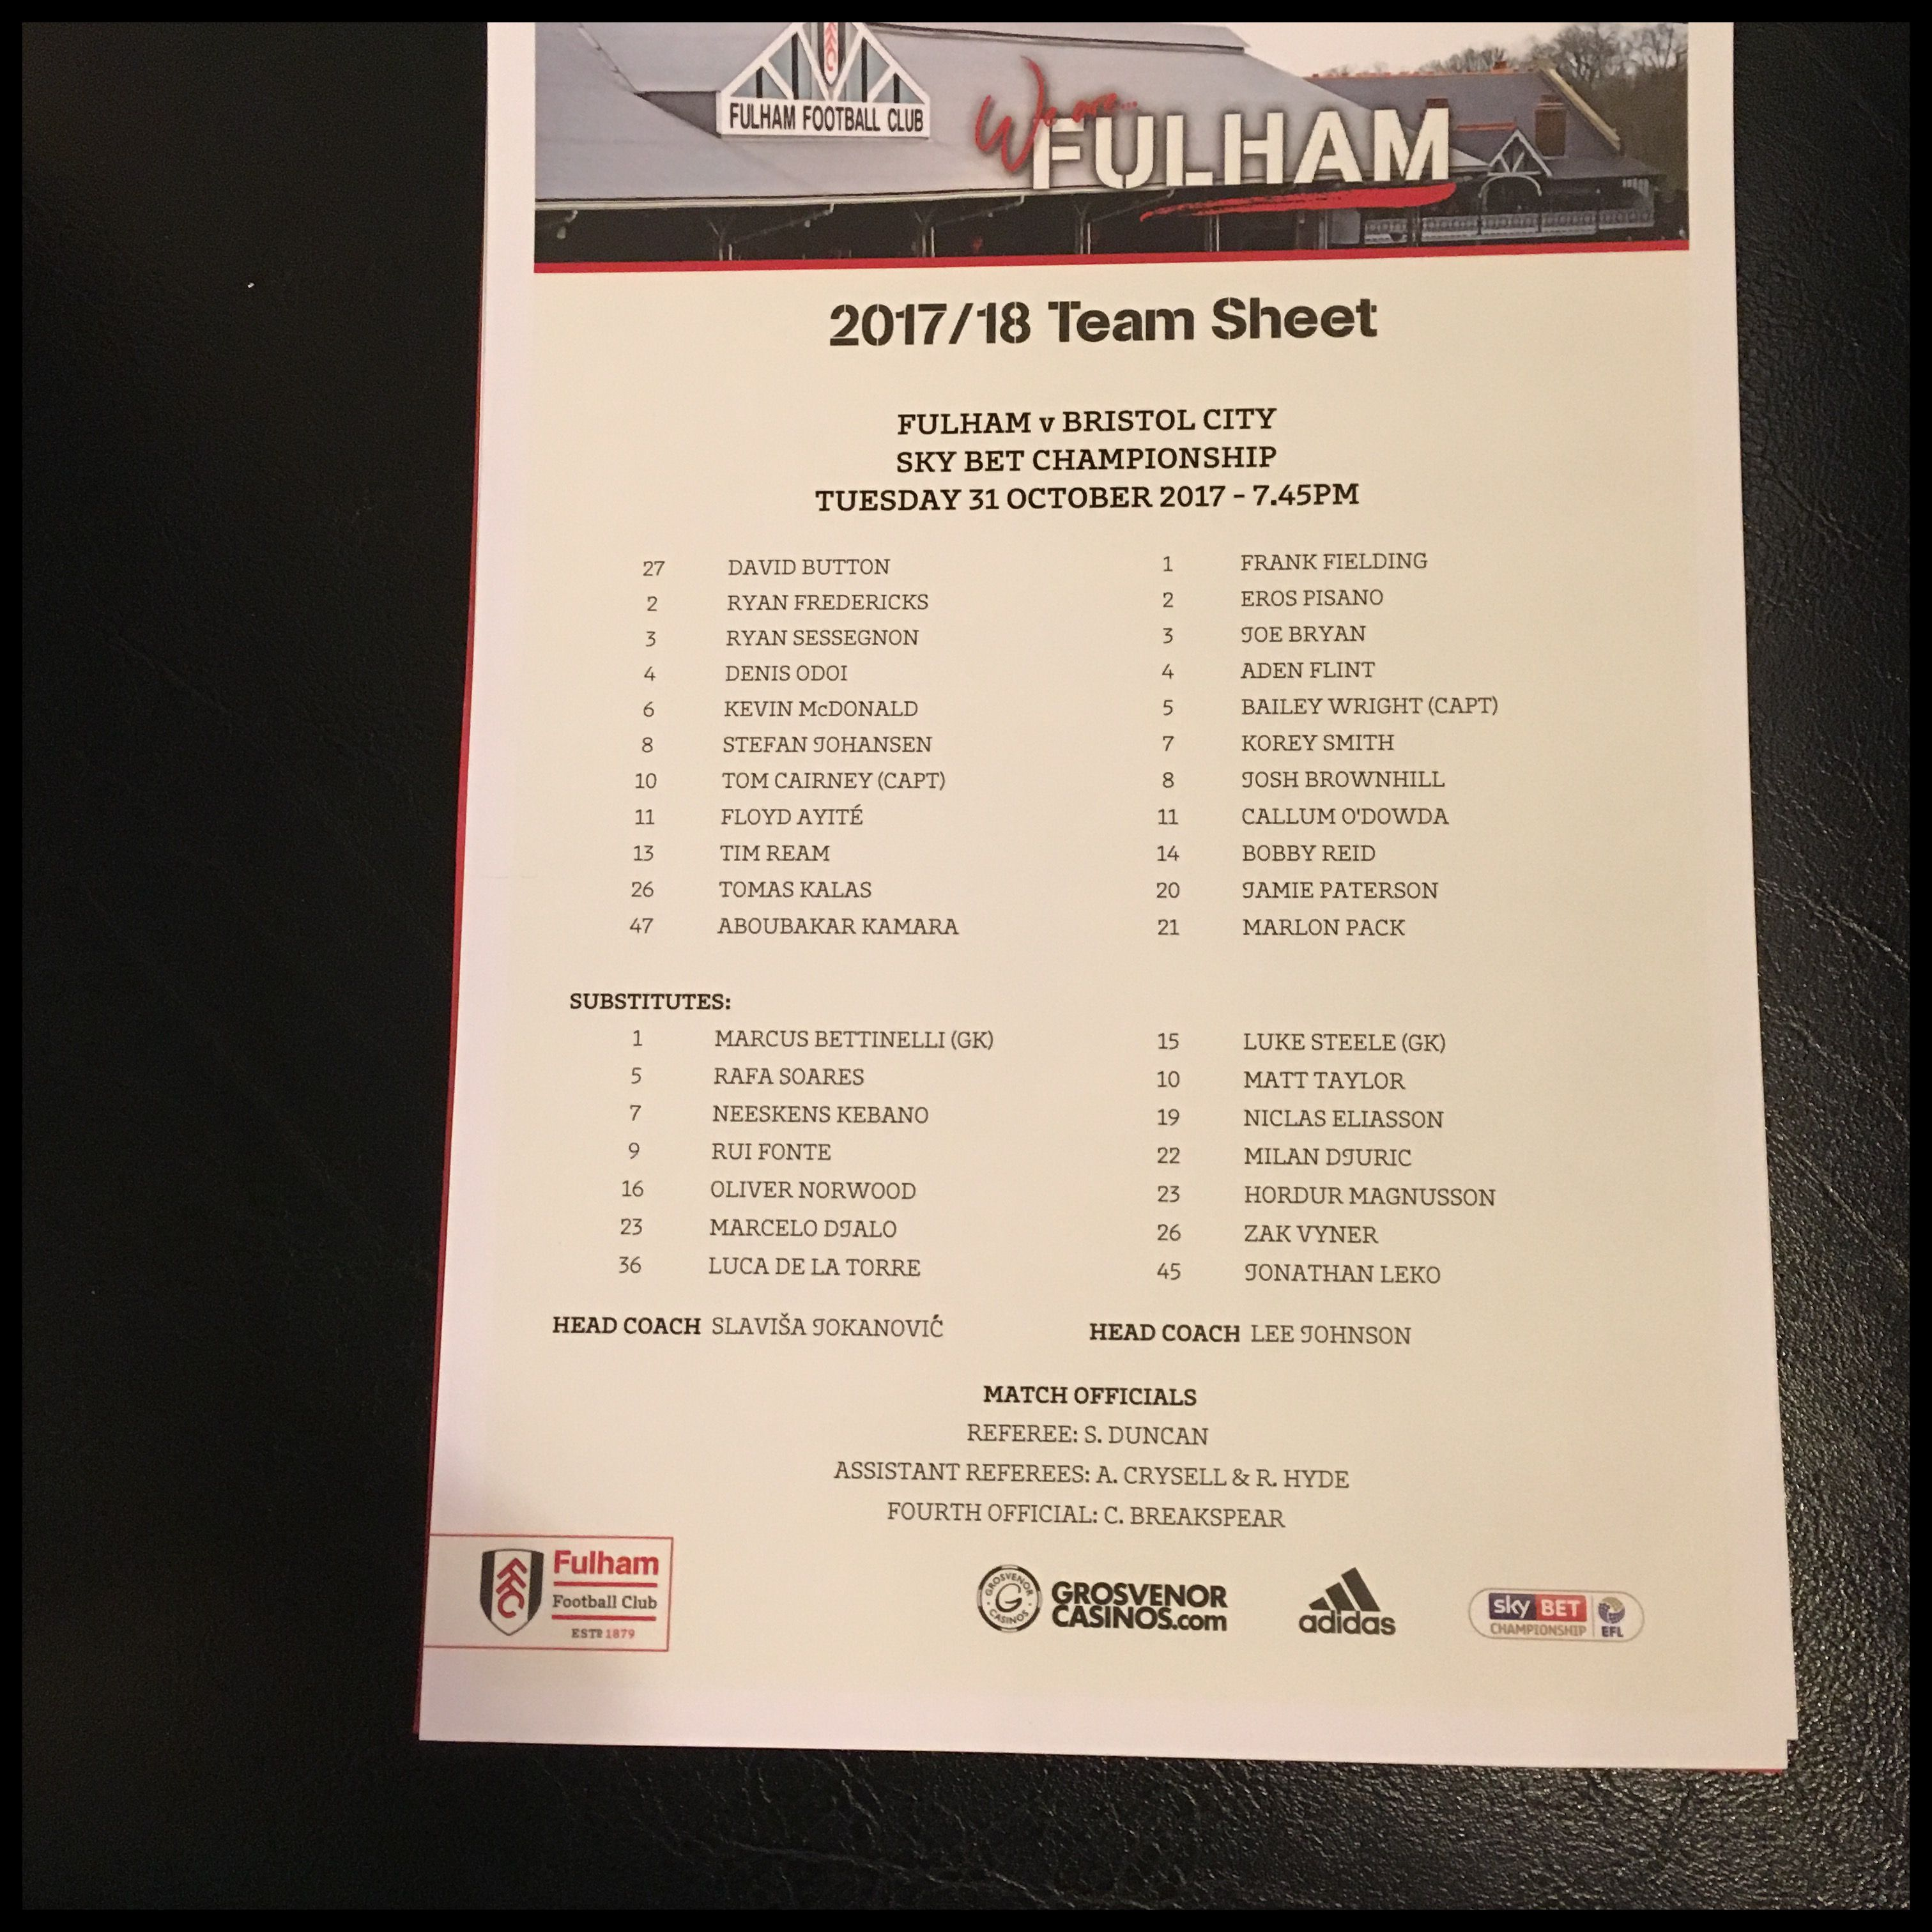 Fulham v Bristol City 31-10-17 Team Sheet